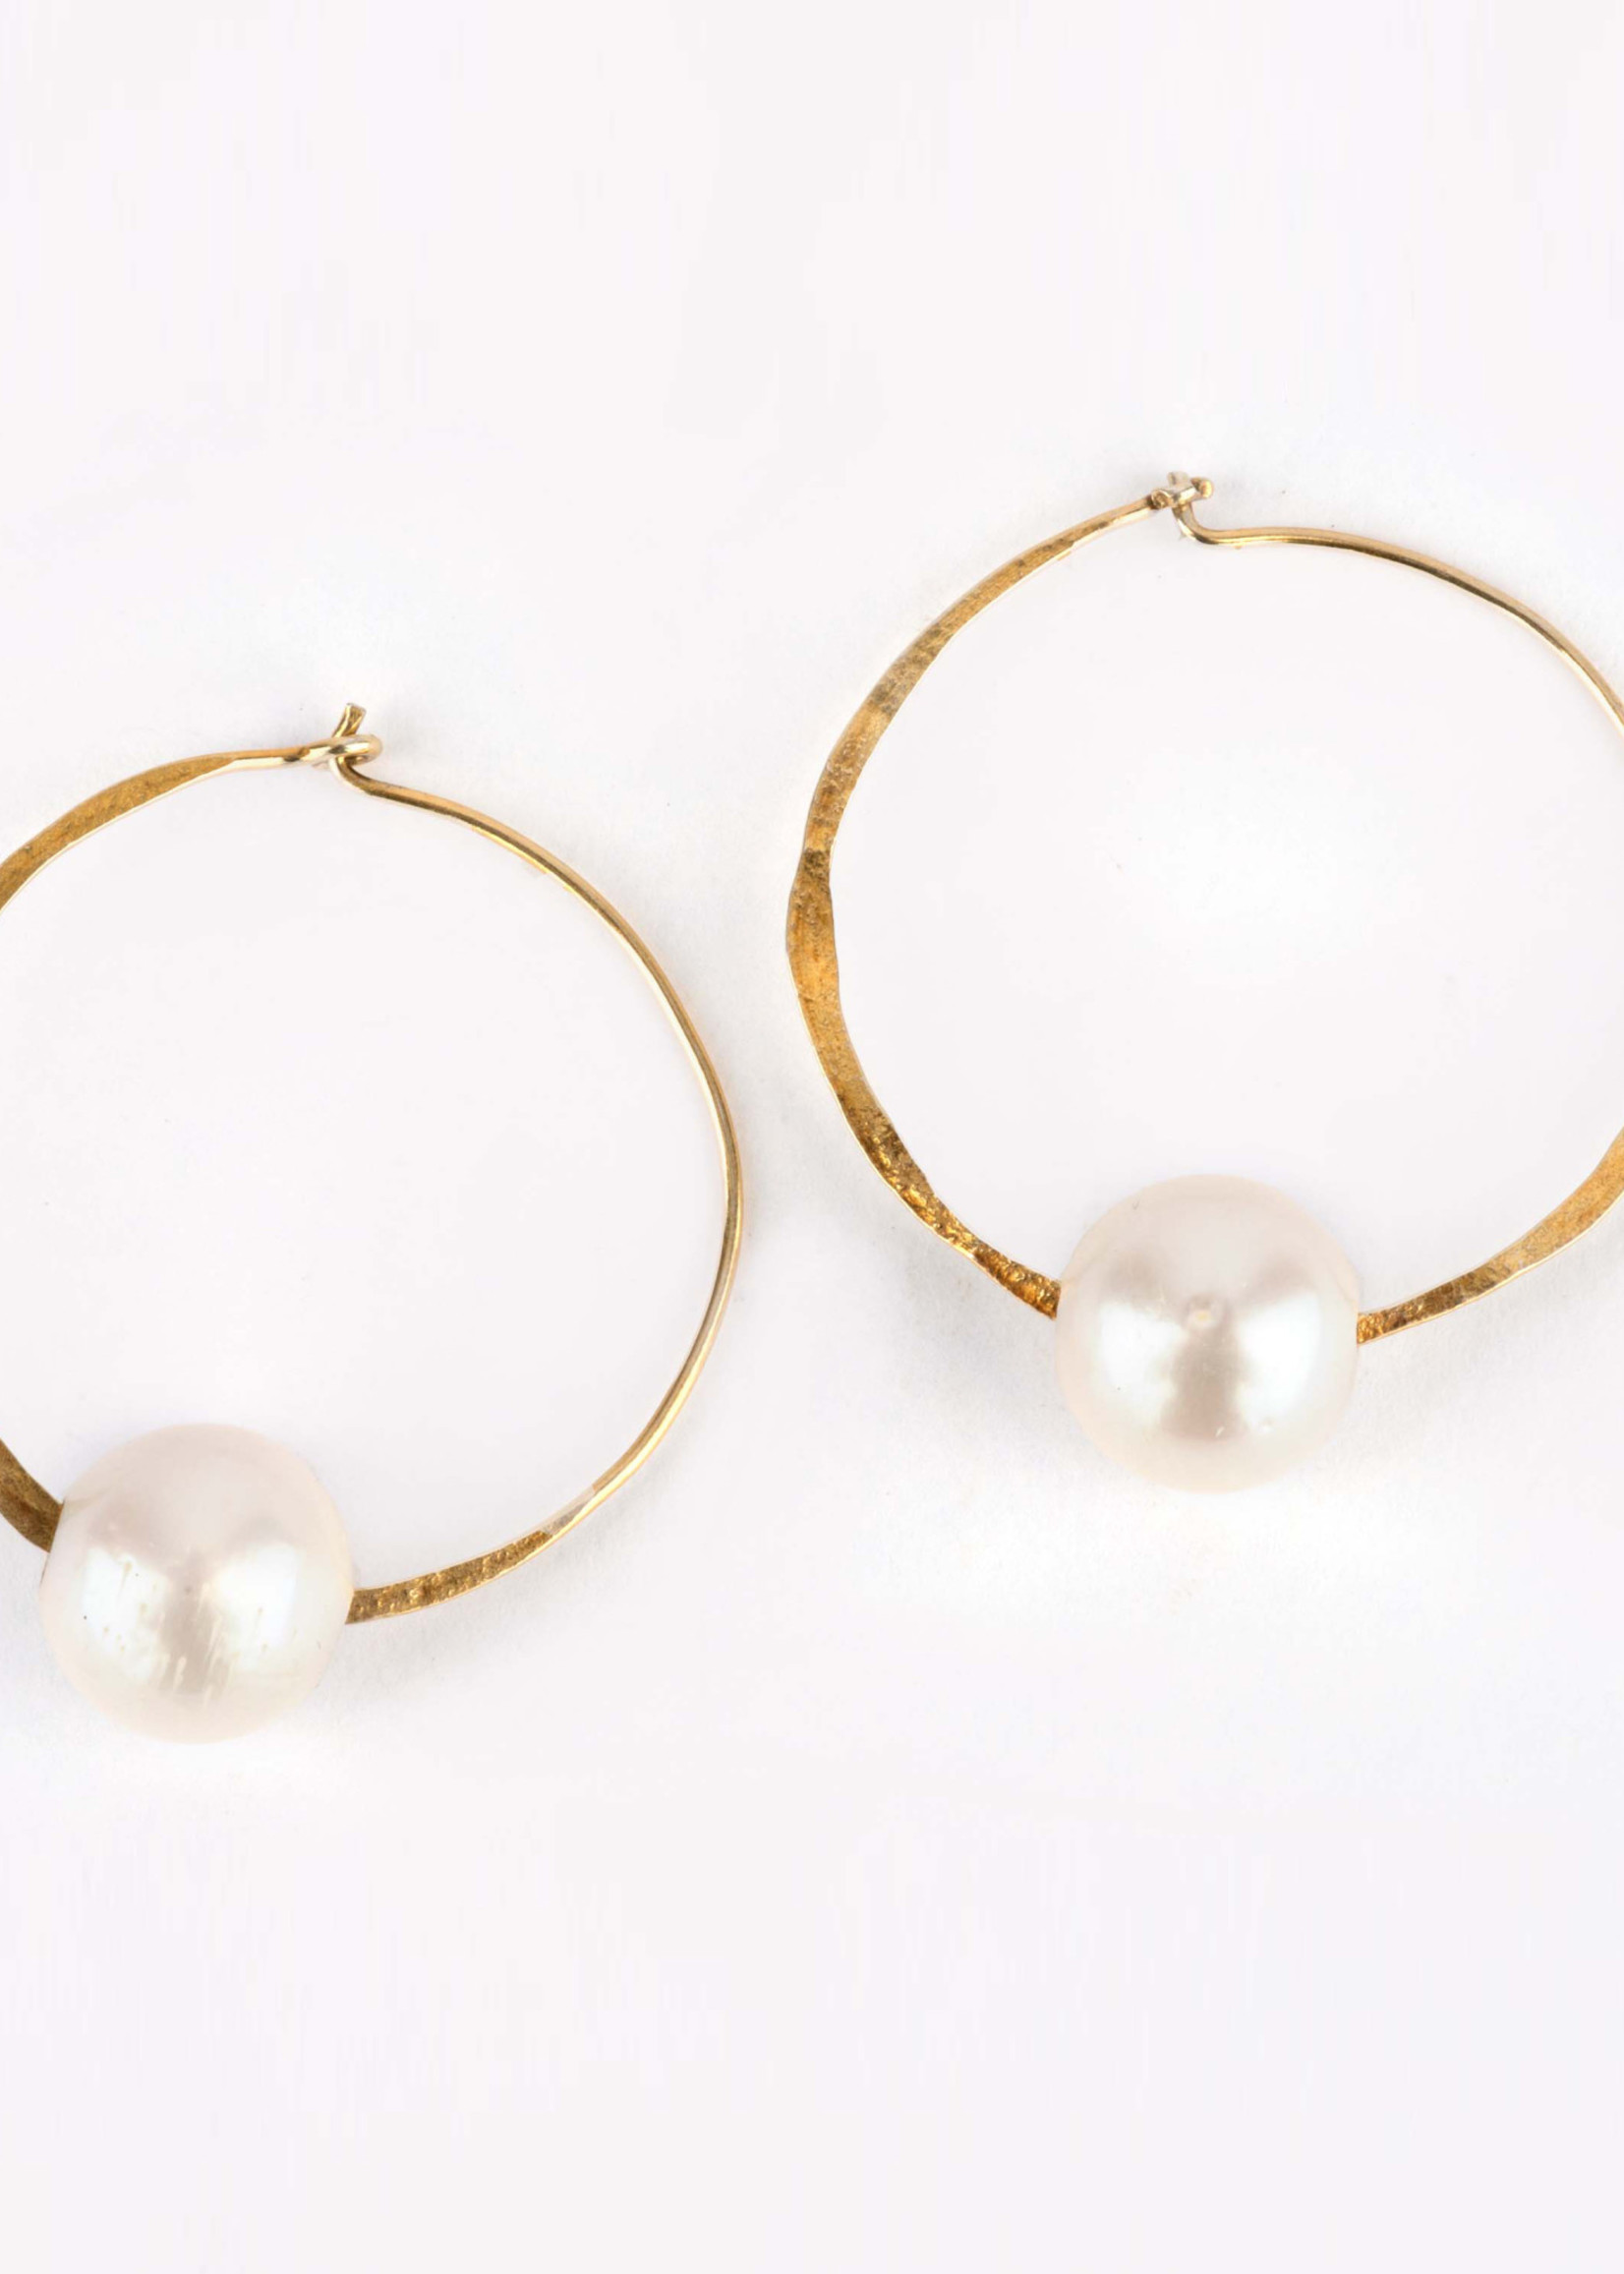 Mina Danielle 25mm Hammered Gold Hoop Earrings with White Pearl